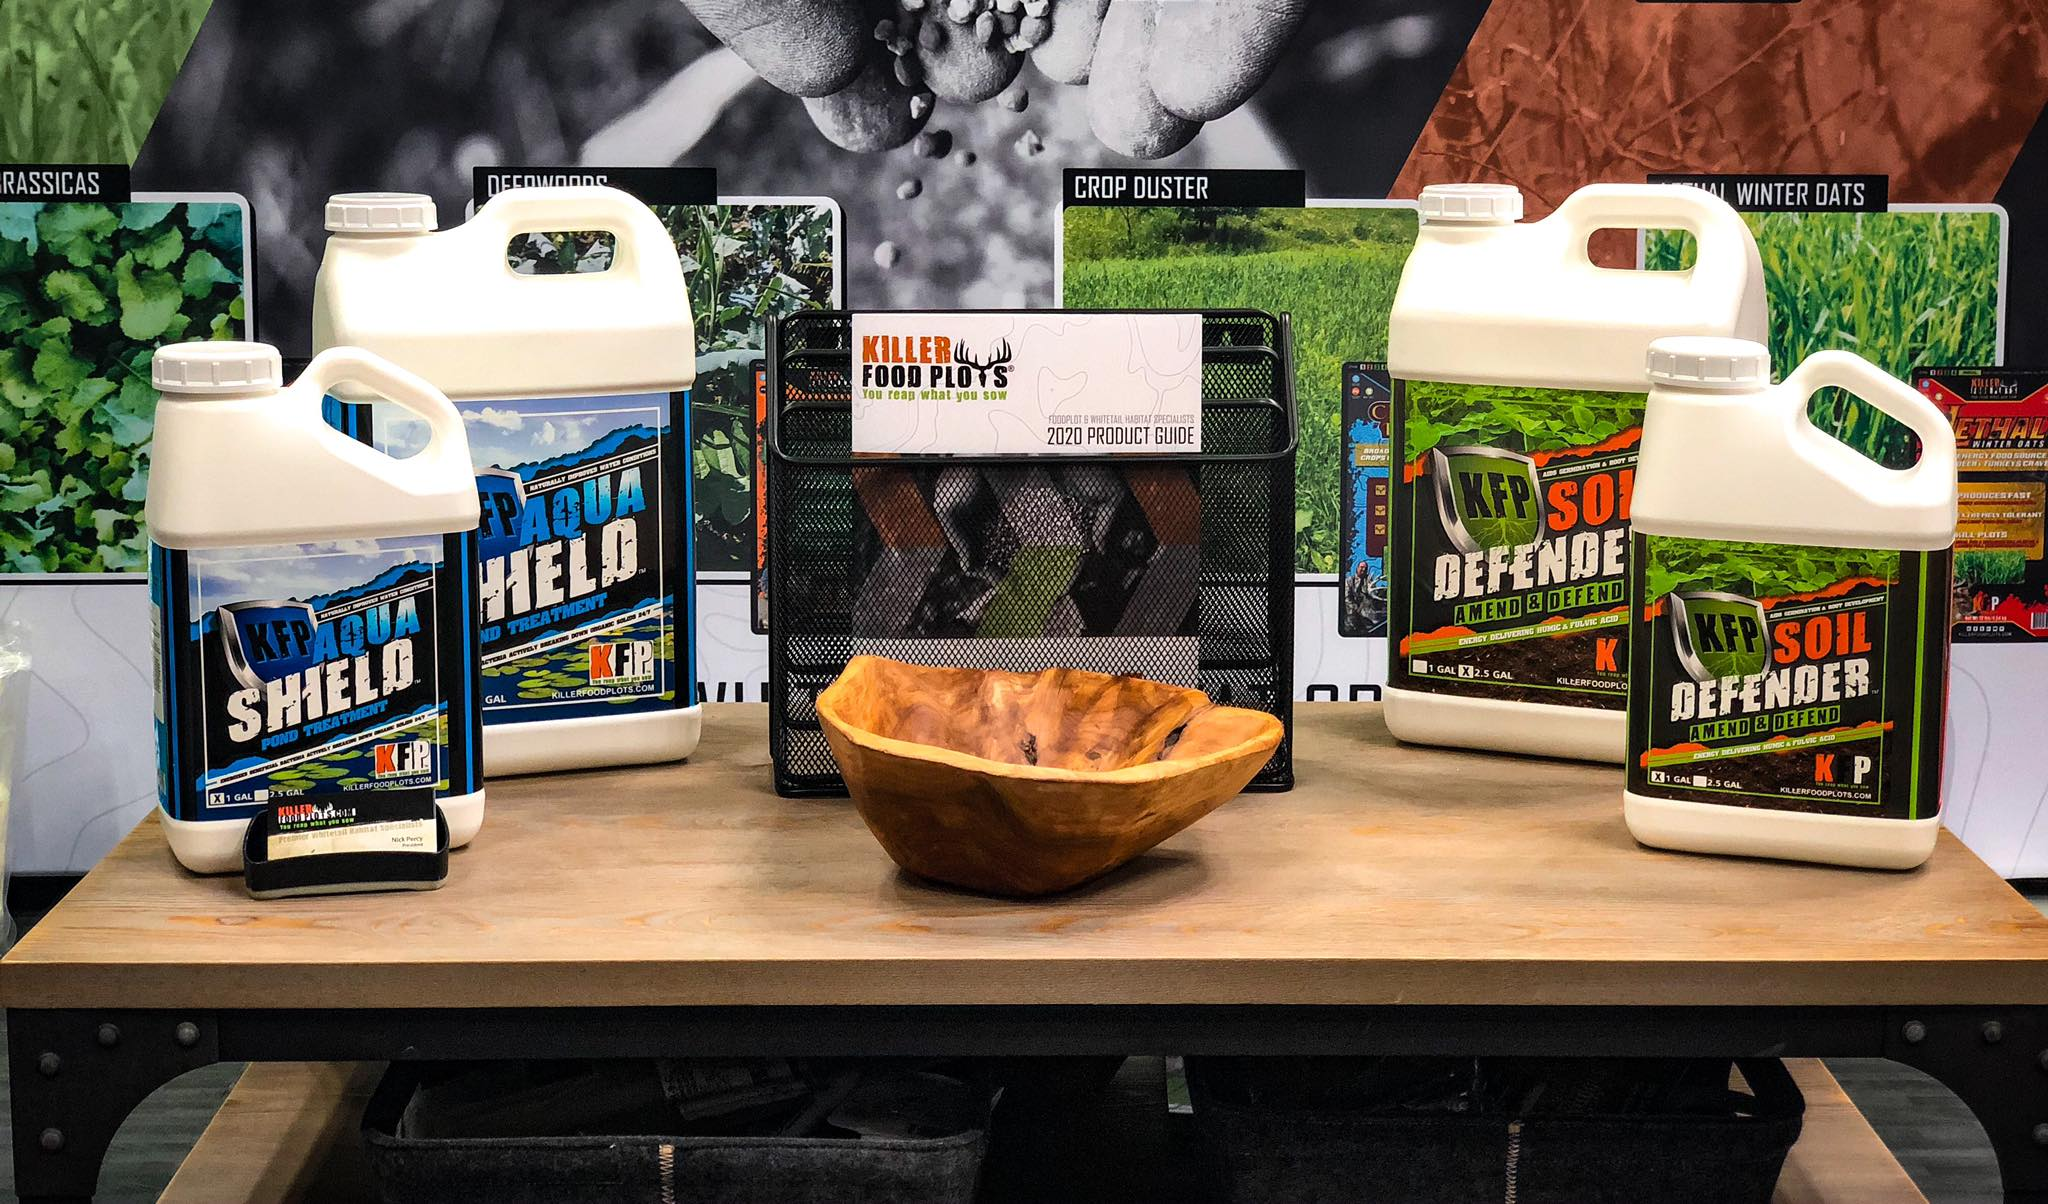 Habitat Podcast #80 - Nick Percy & Wes Baker - 2020 Drought Year, Pond Management, Soil Health, Aqua Shield & Soil Defender, Liquid Fertilizer, Rotating Food Plots, ATA Innovation Award & Taking Veterans Hunting show art